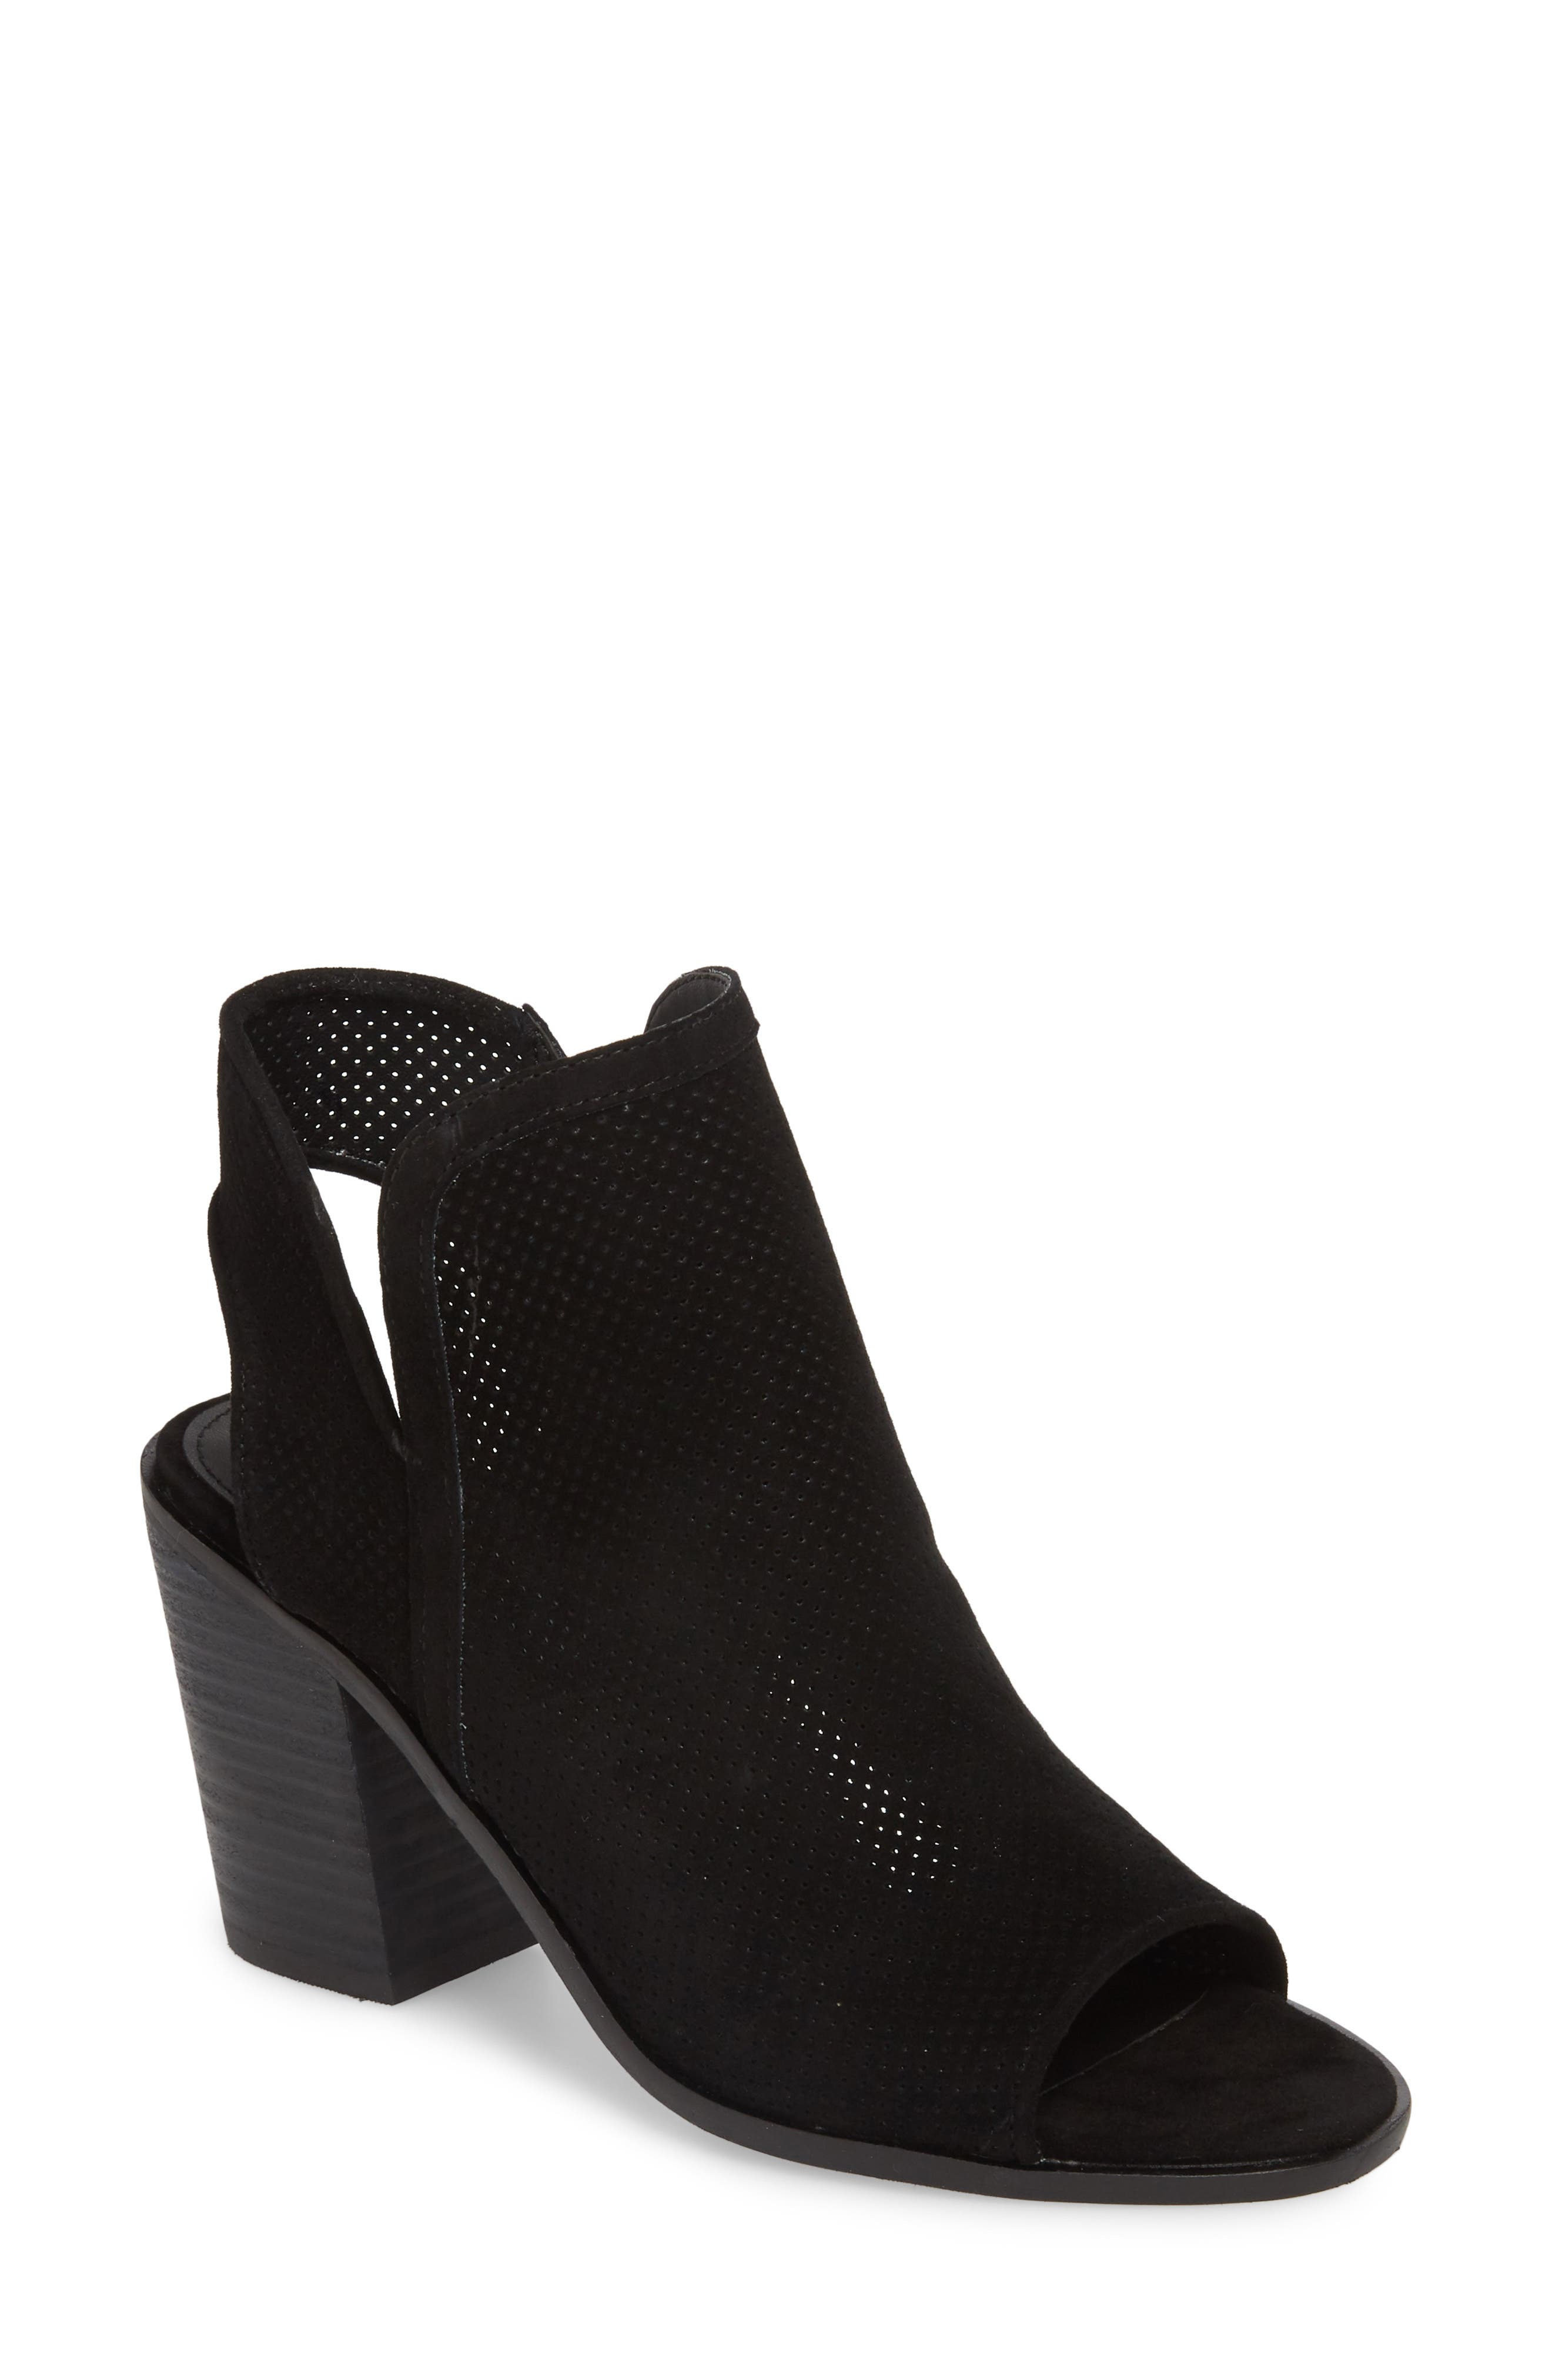 Maxine Perforated Bootie,                         Main,                         color, 006